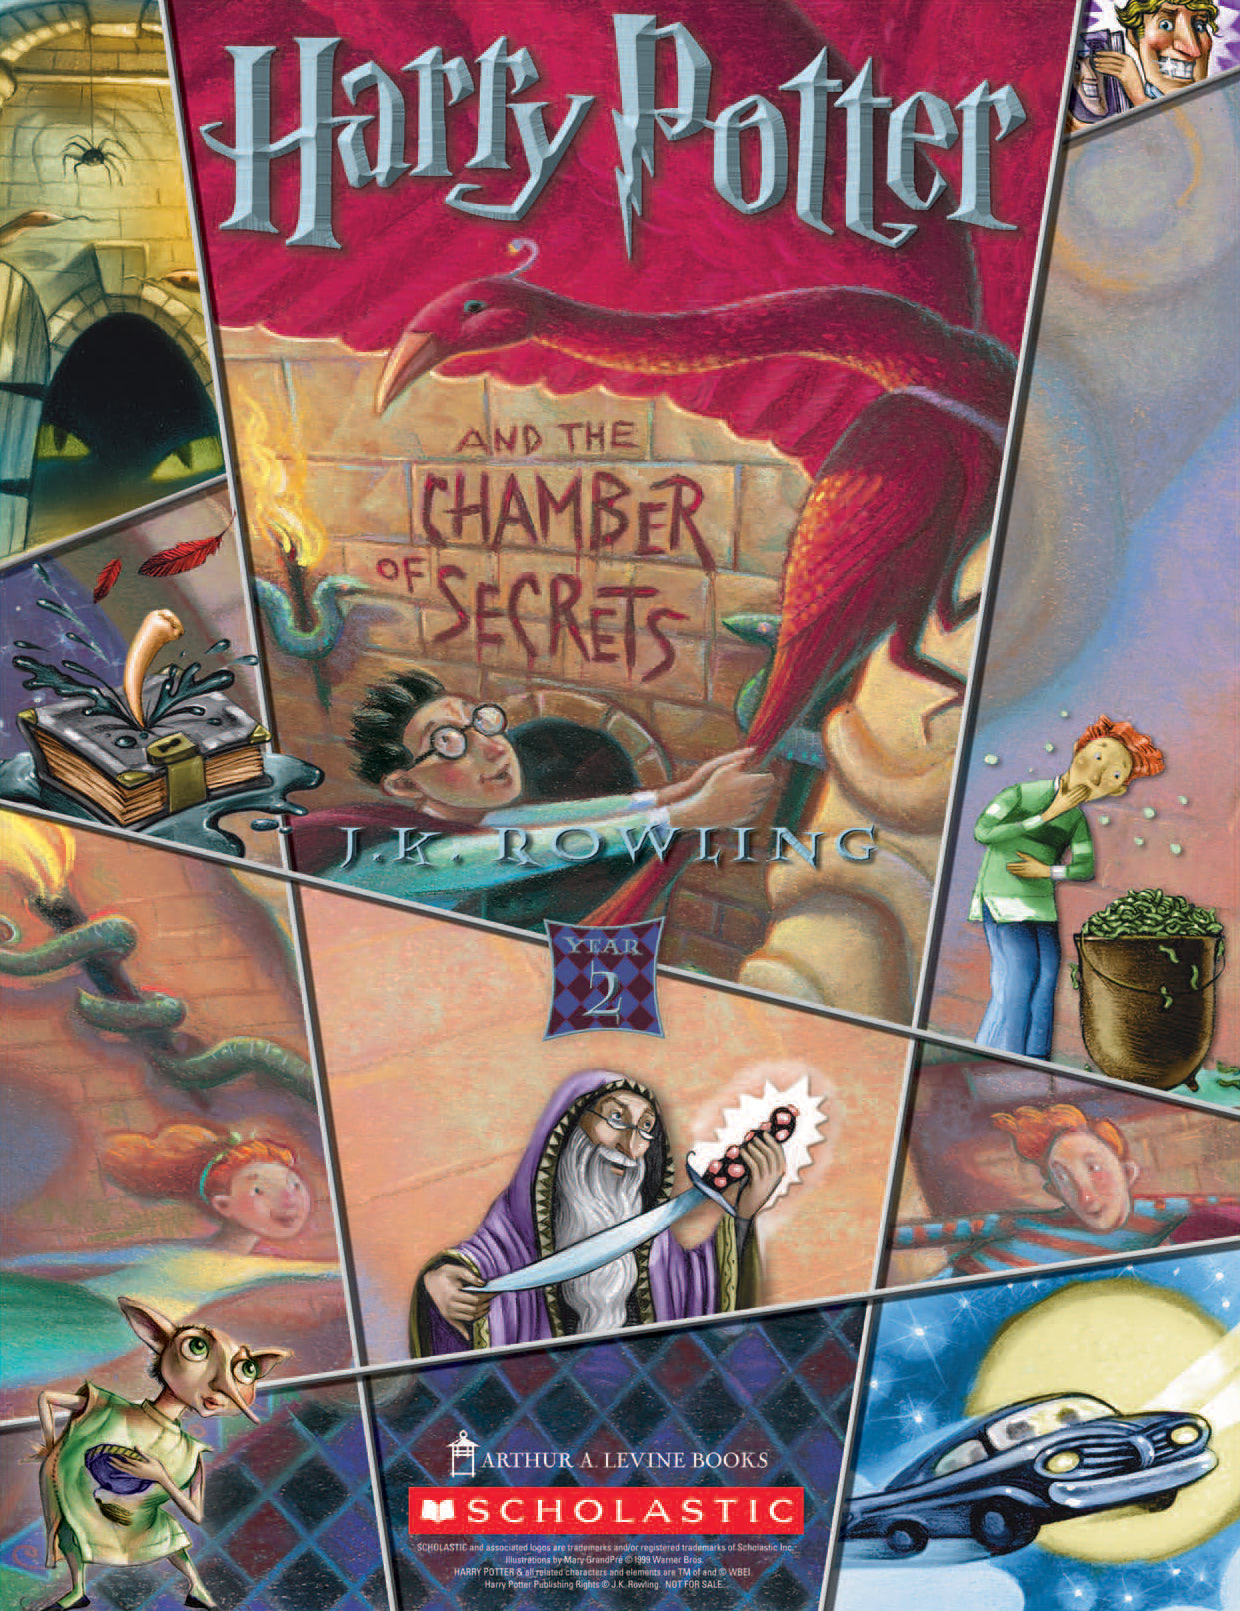 Chamber Of Secrets Year 2 Scholastic Promotional